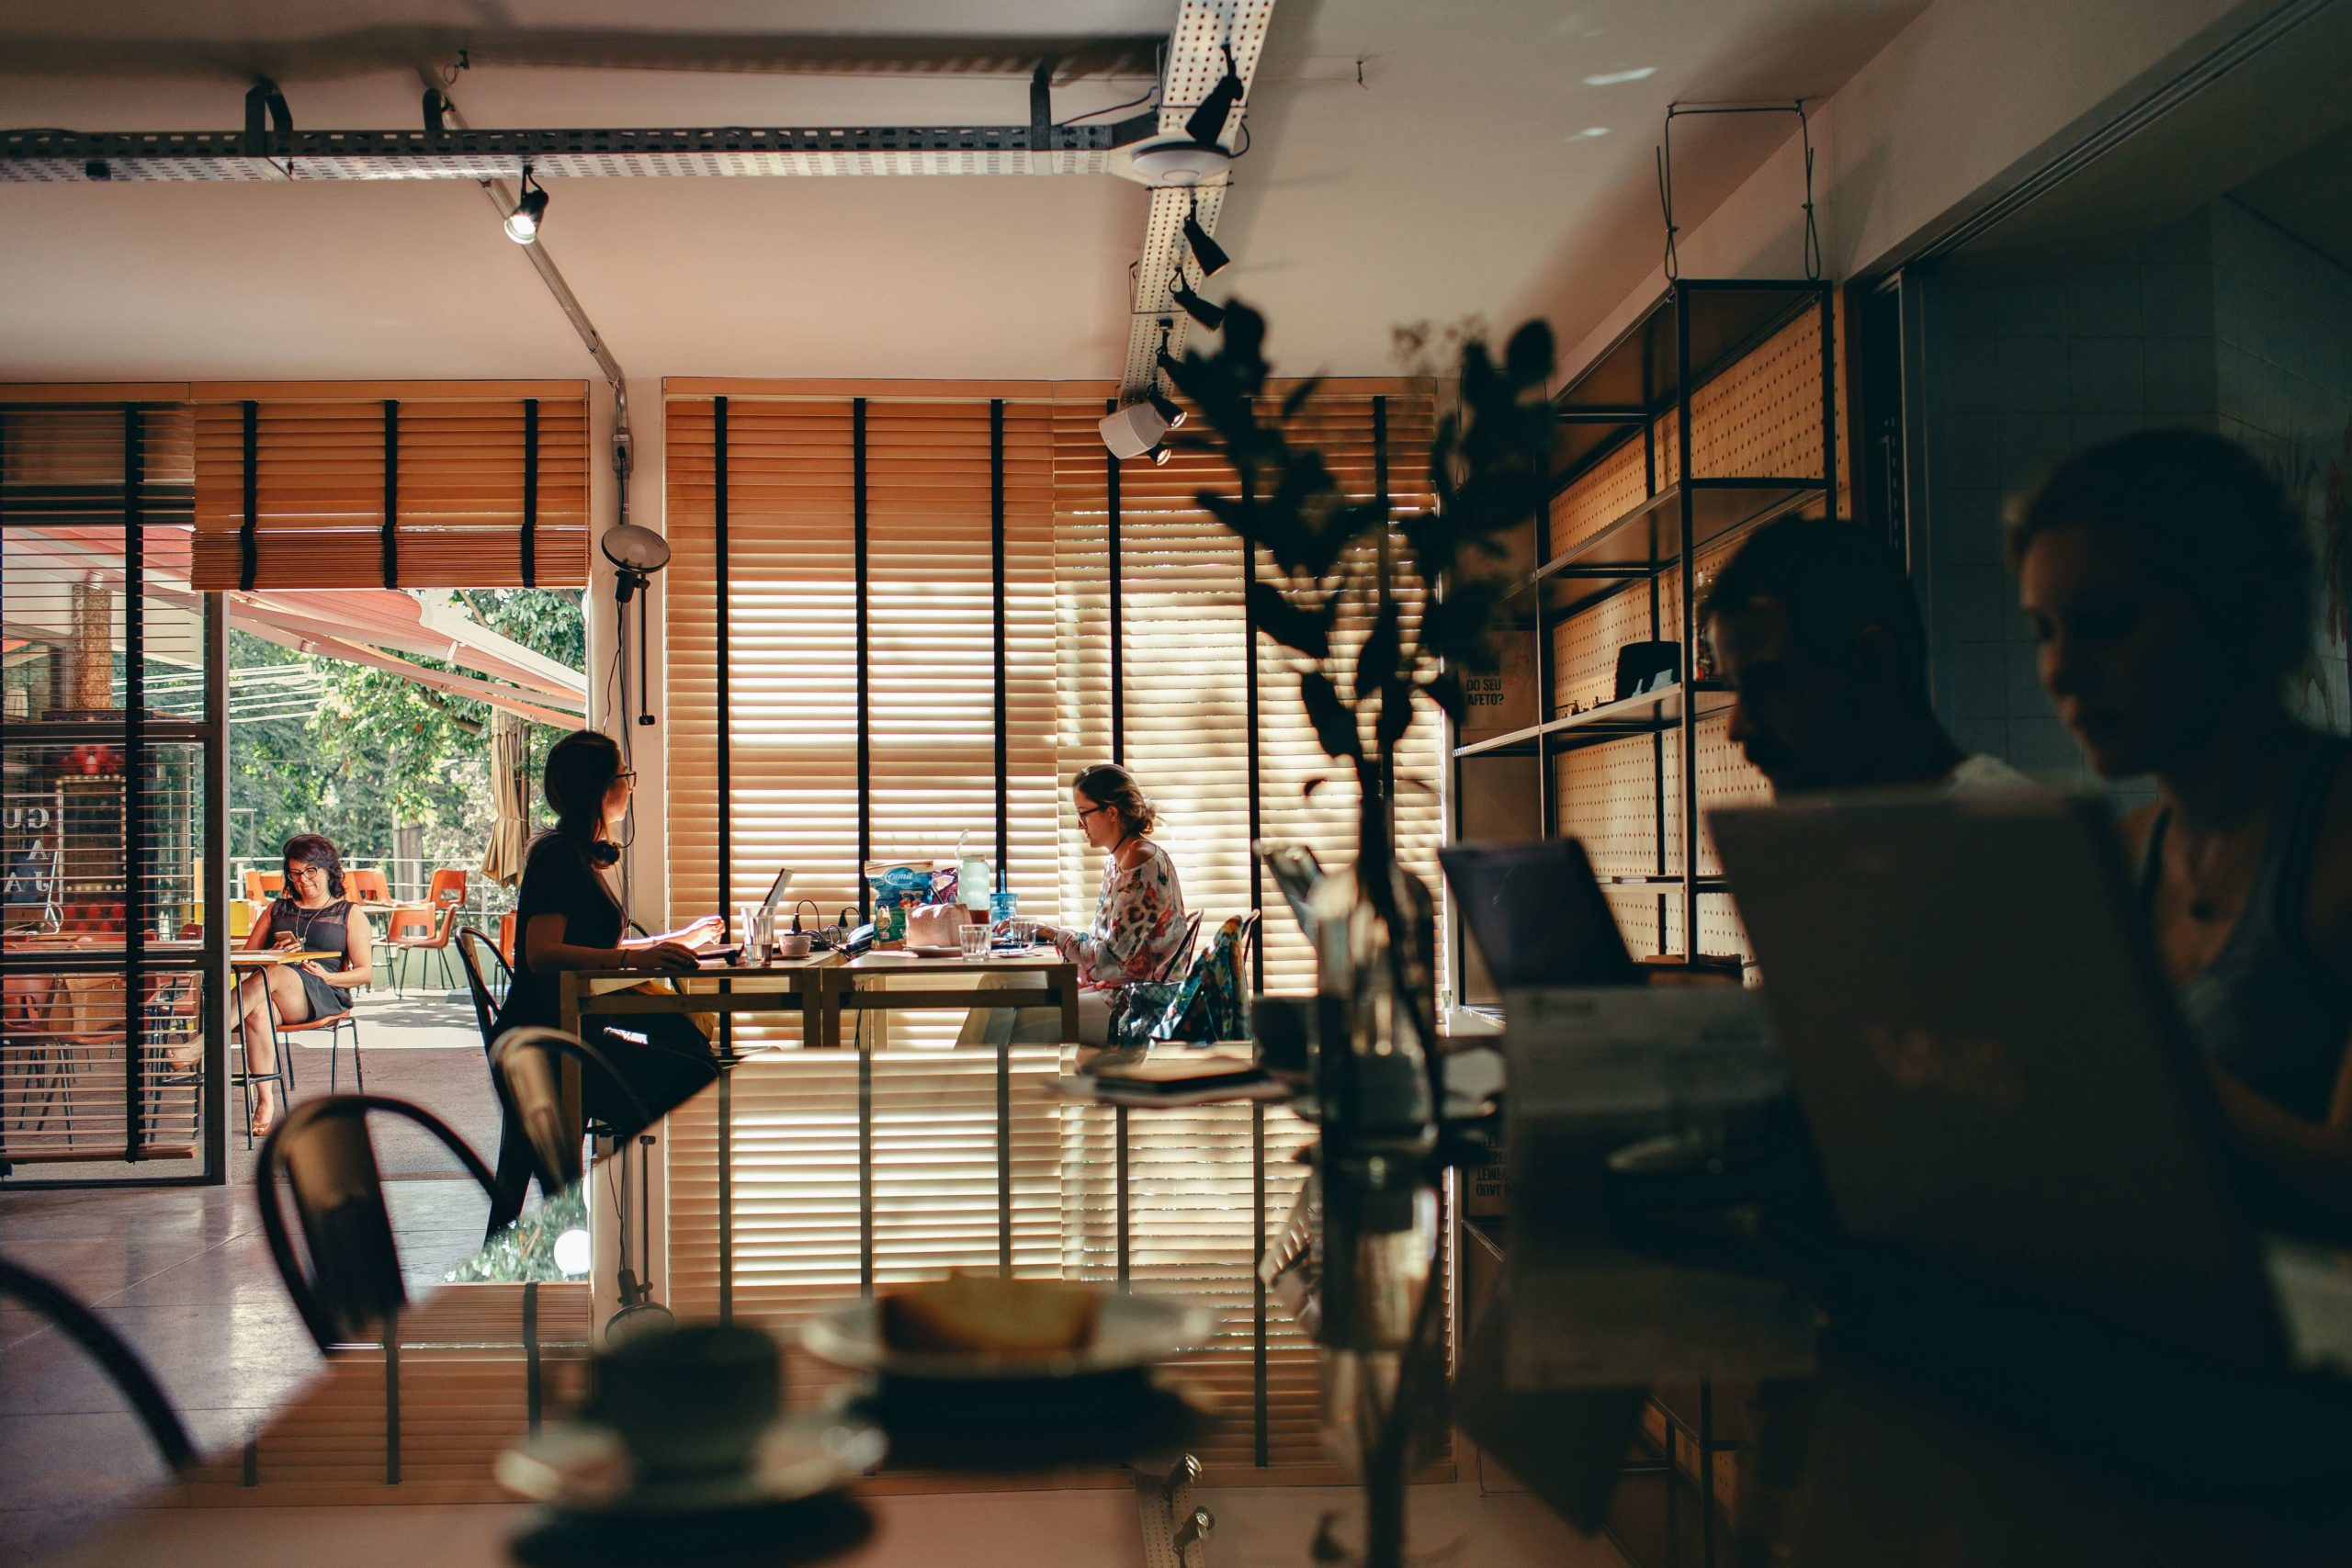 remote work meaning - coworking space